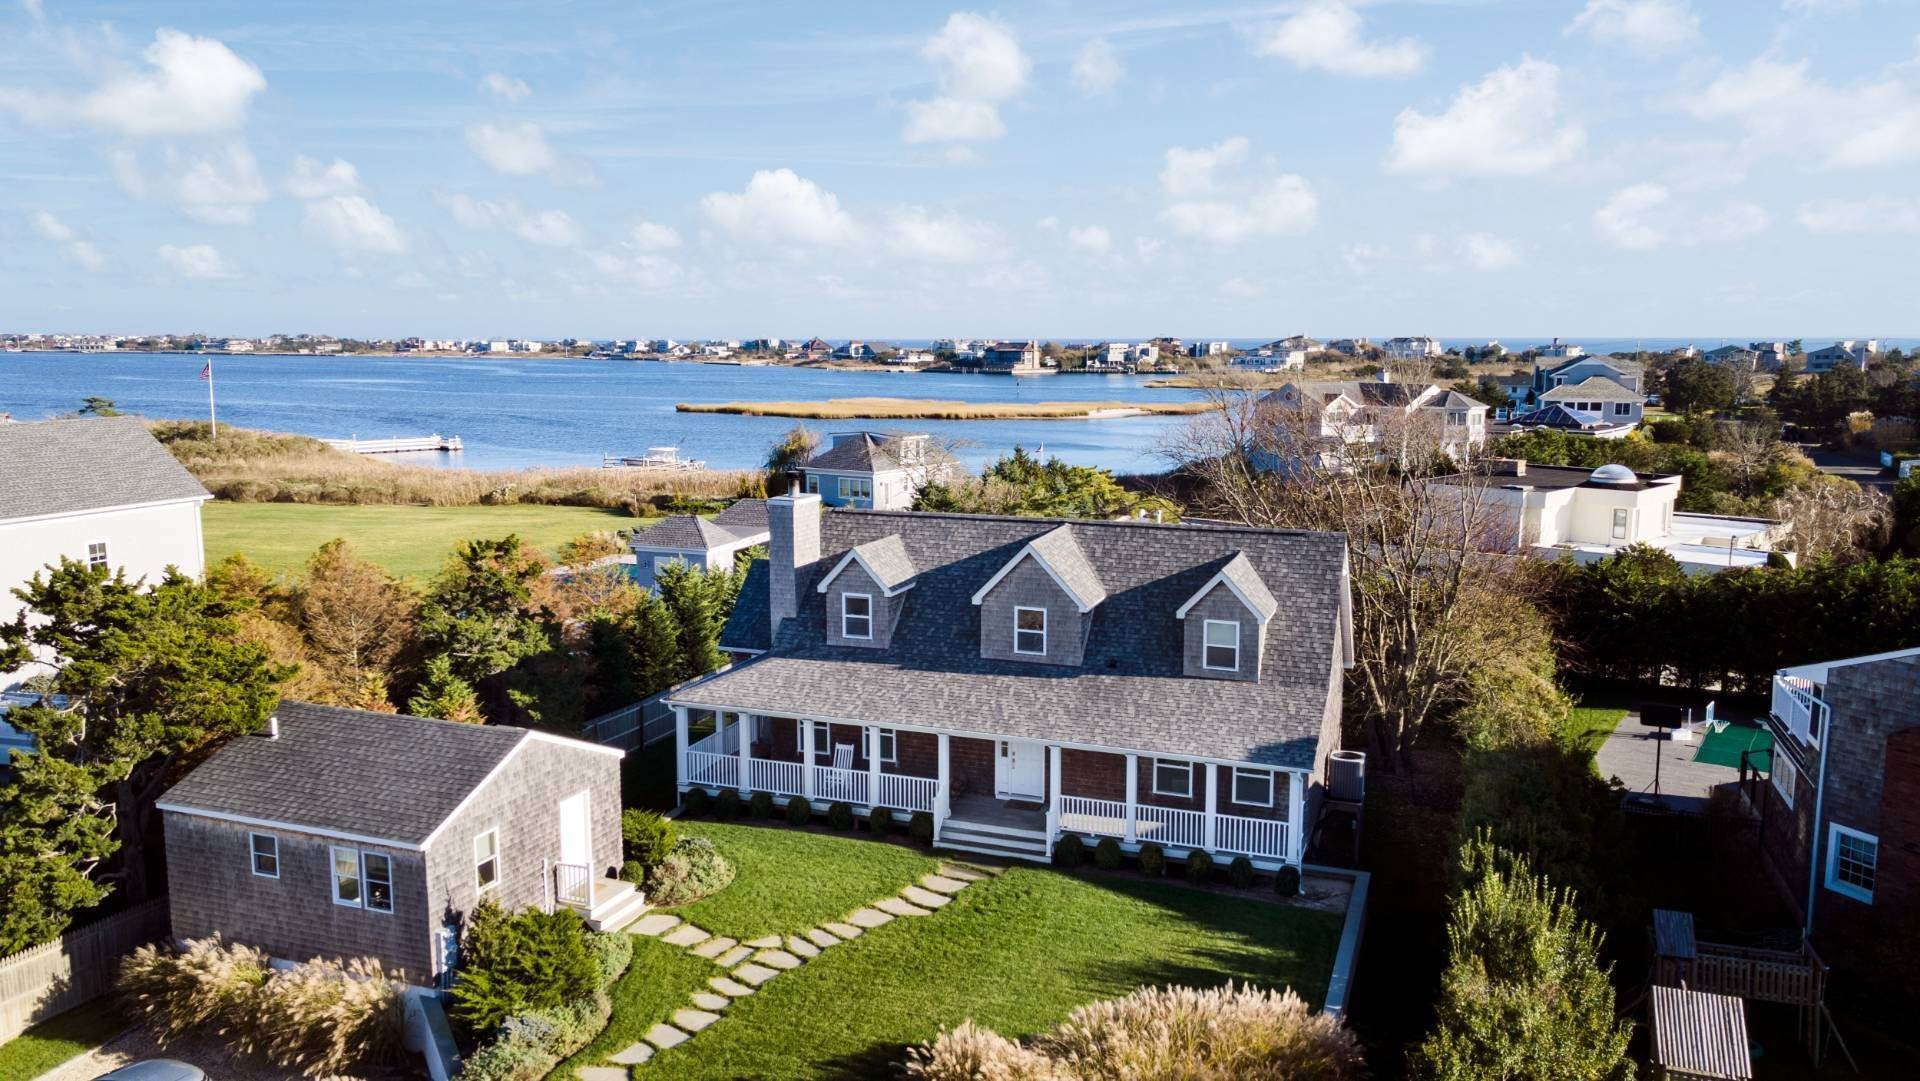 Single Family Home for Sale at Waterviews With Pool And Guest Cottage 31 Exchange Pl, Westhampton Beach Village, NY 11978